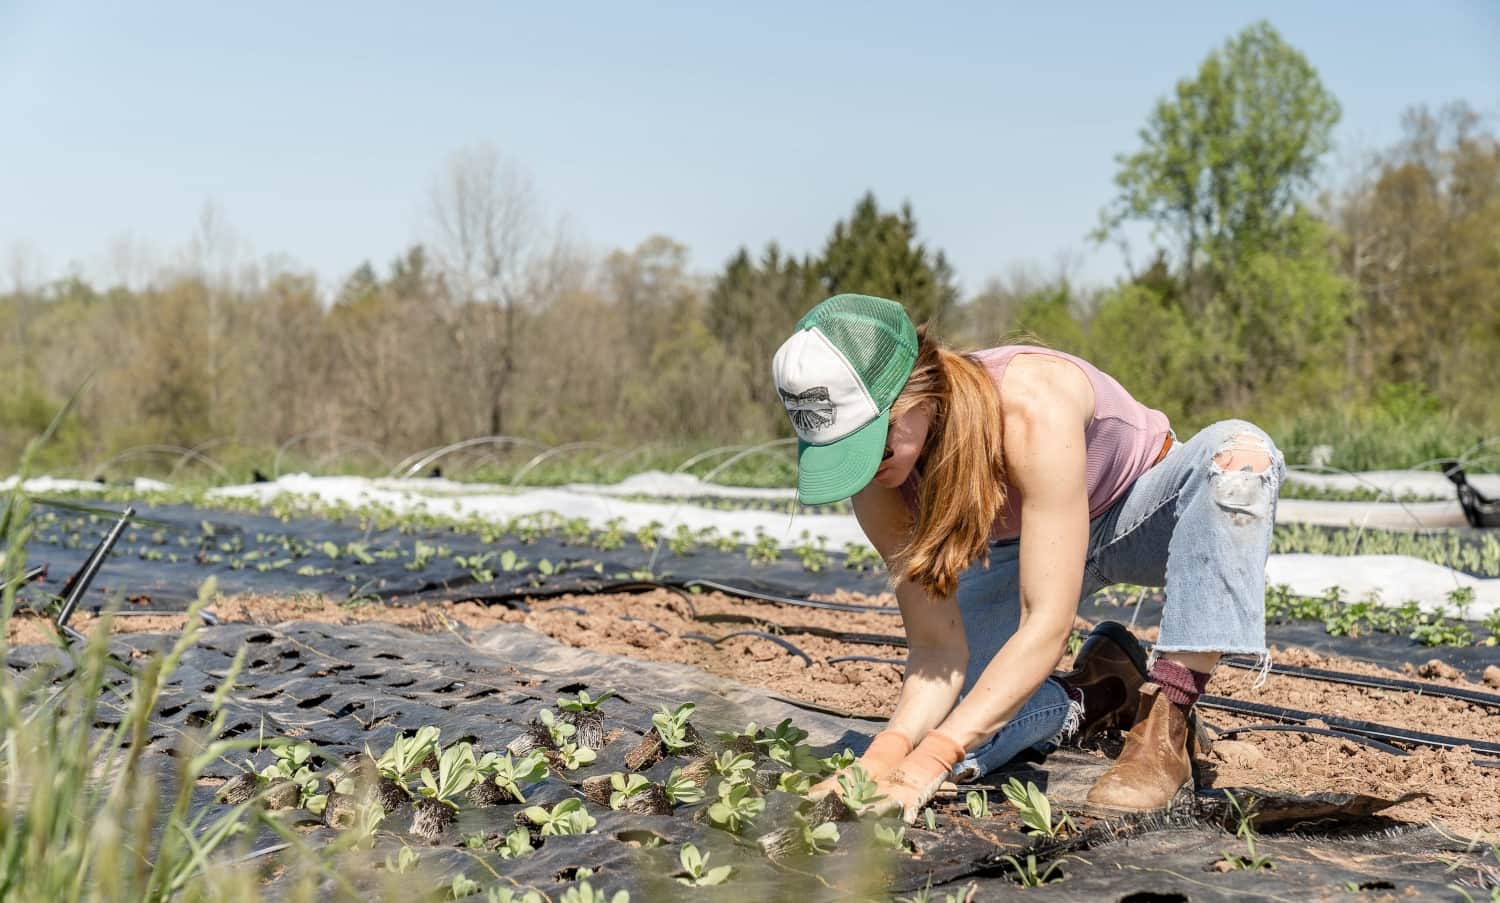 To celebrate International Youth Day, Food Tank has compiled a list of youth who are changing the food system.